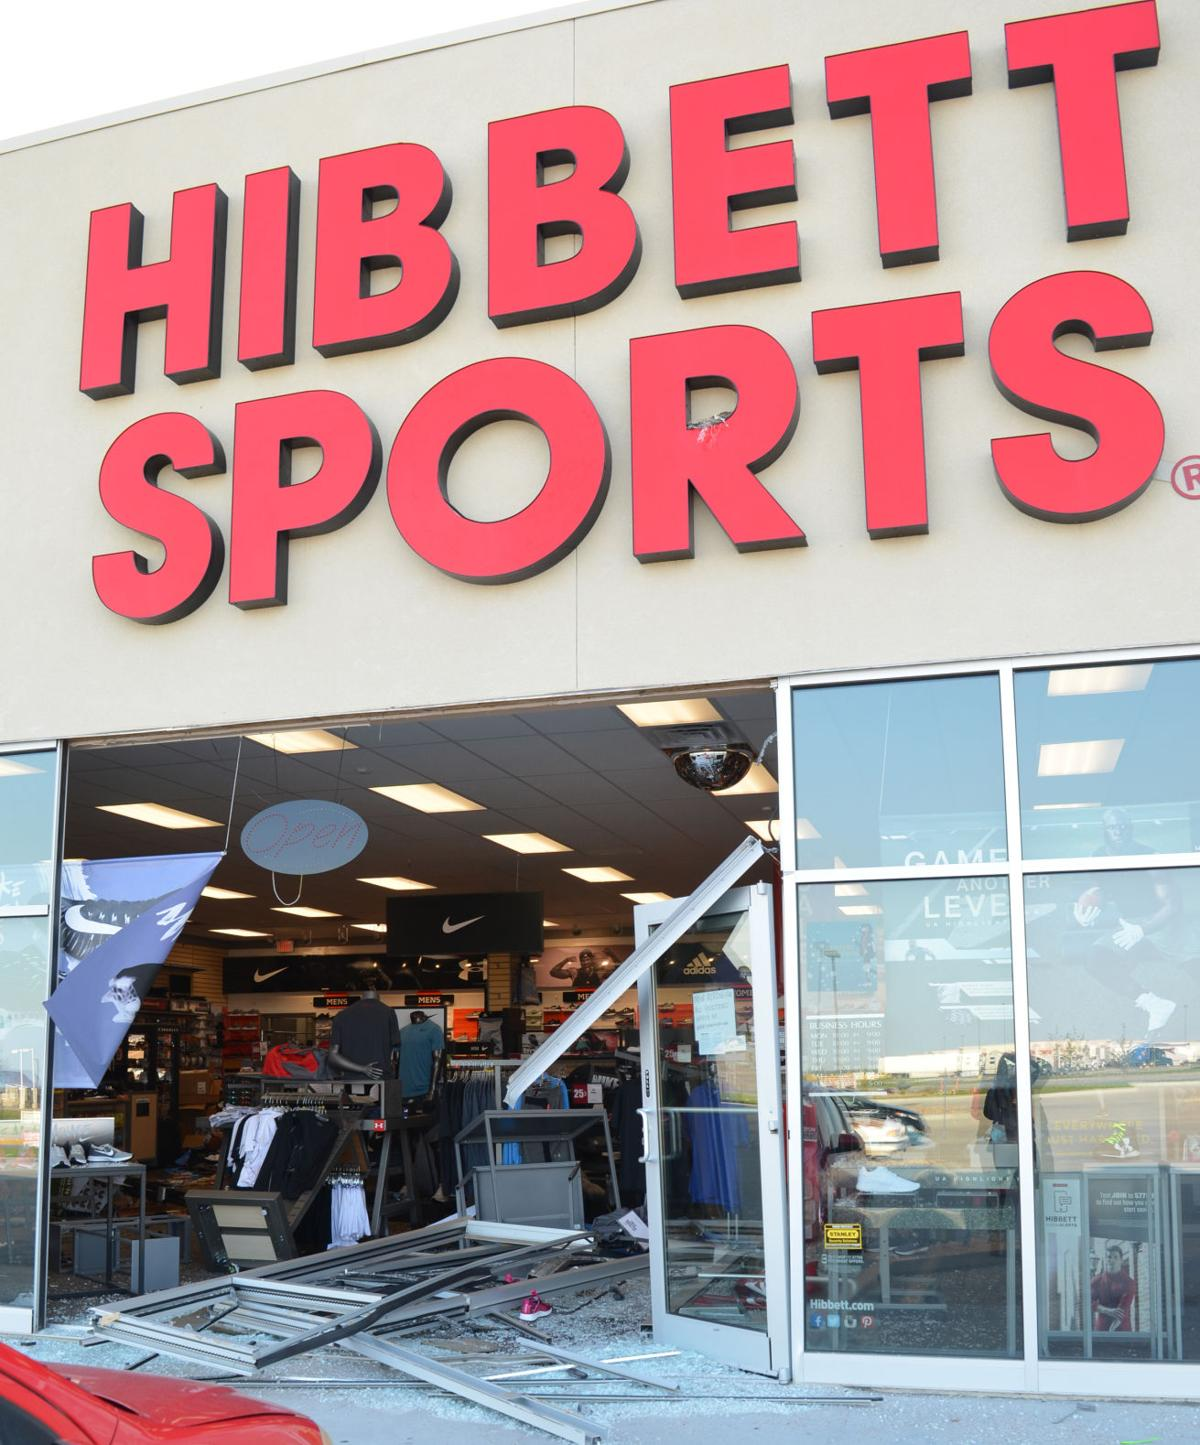 0dc096f63b67 Kearney man arrested for smashing car through Lex business. The front  entryway of Hibbett Sports ...